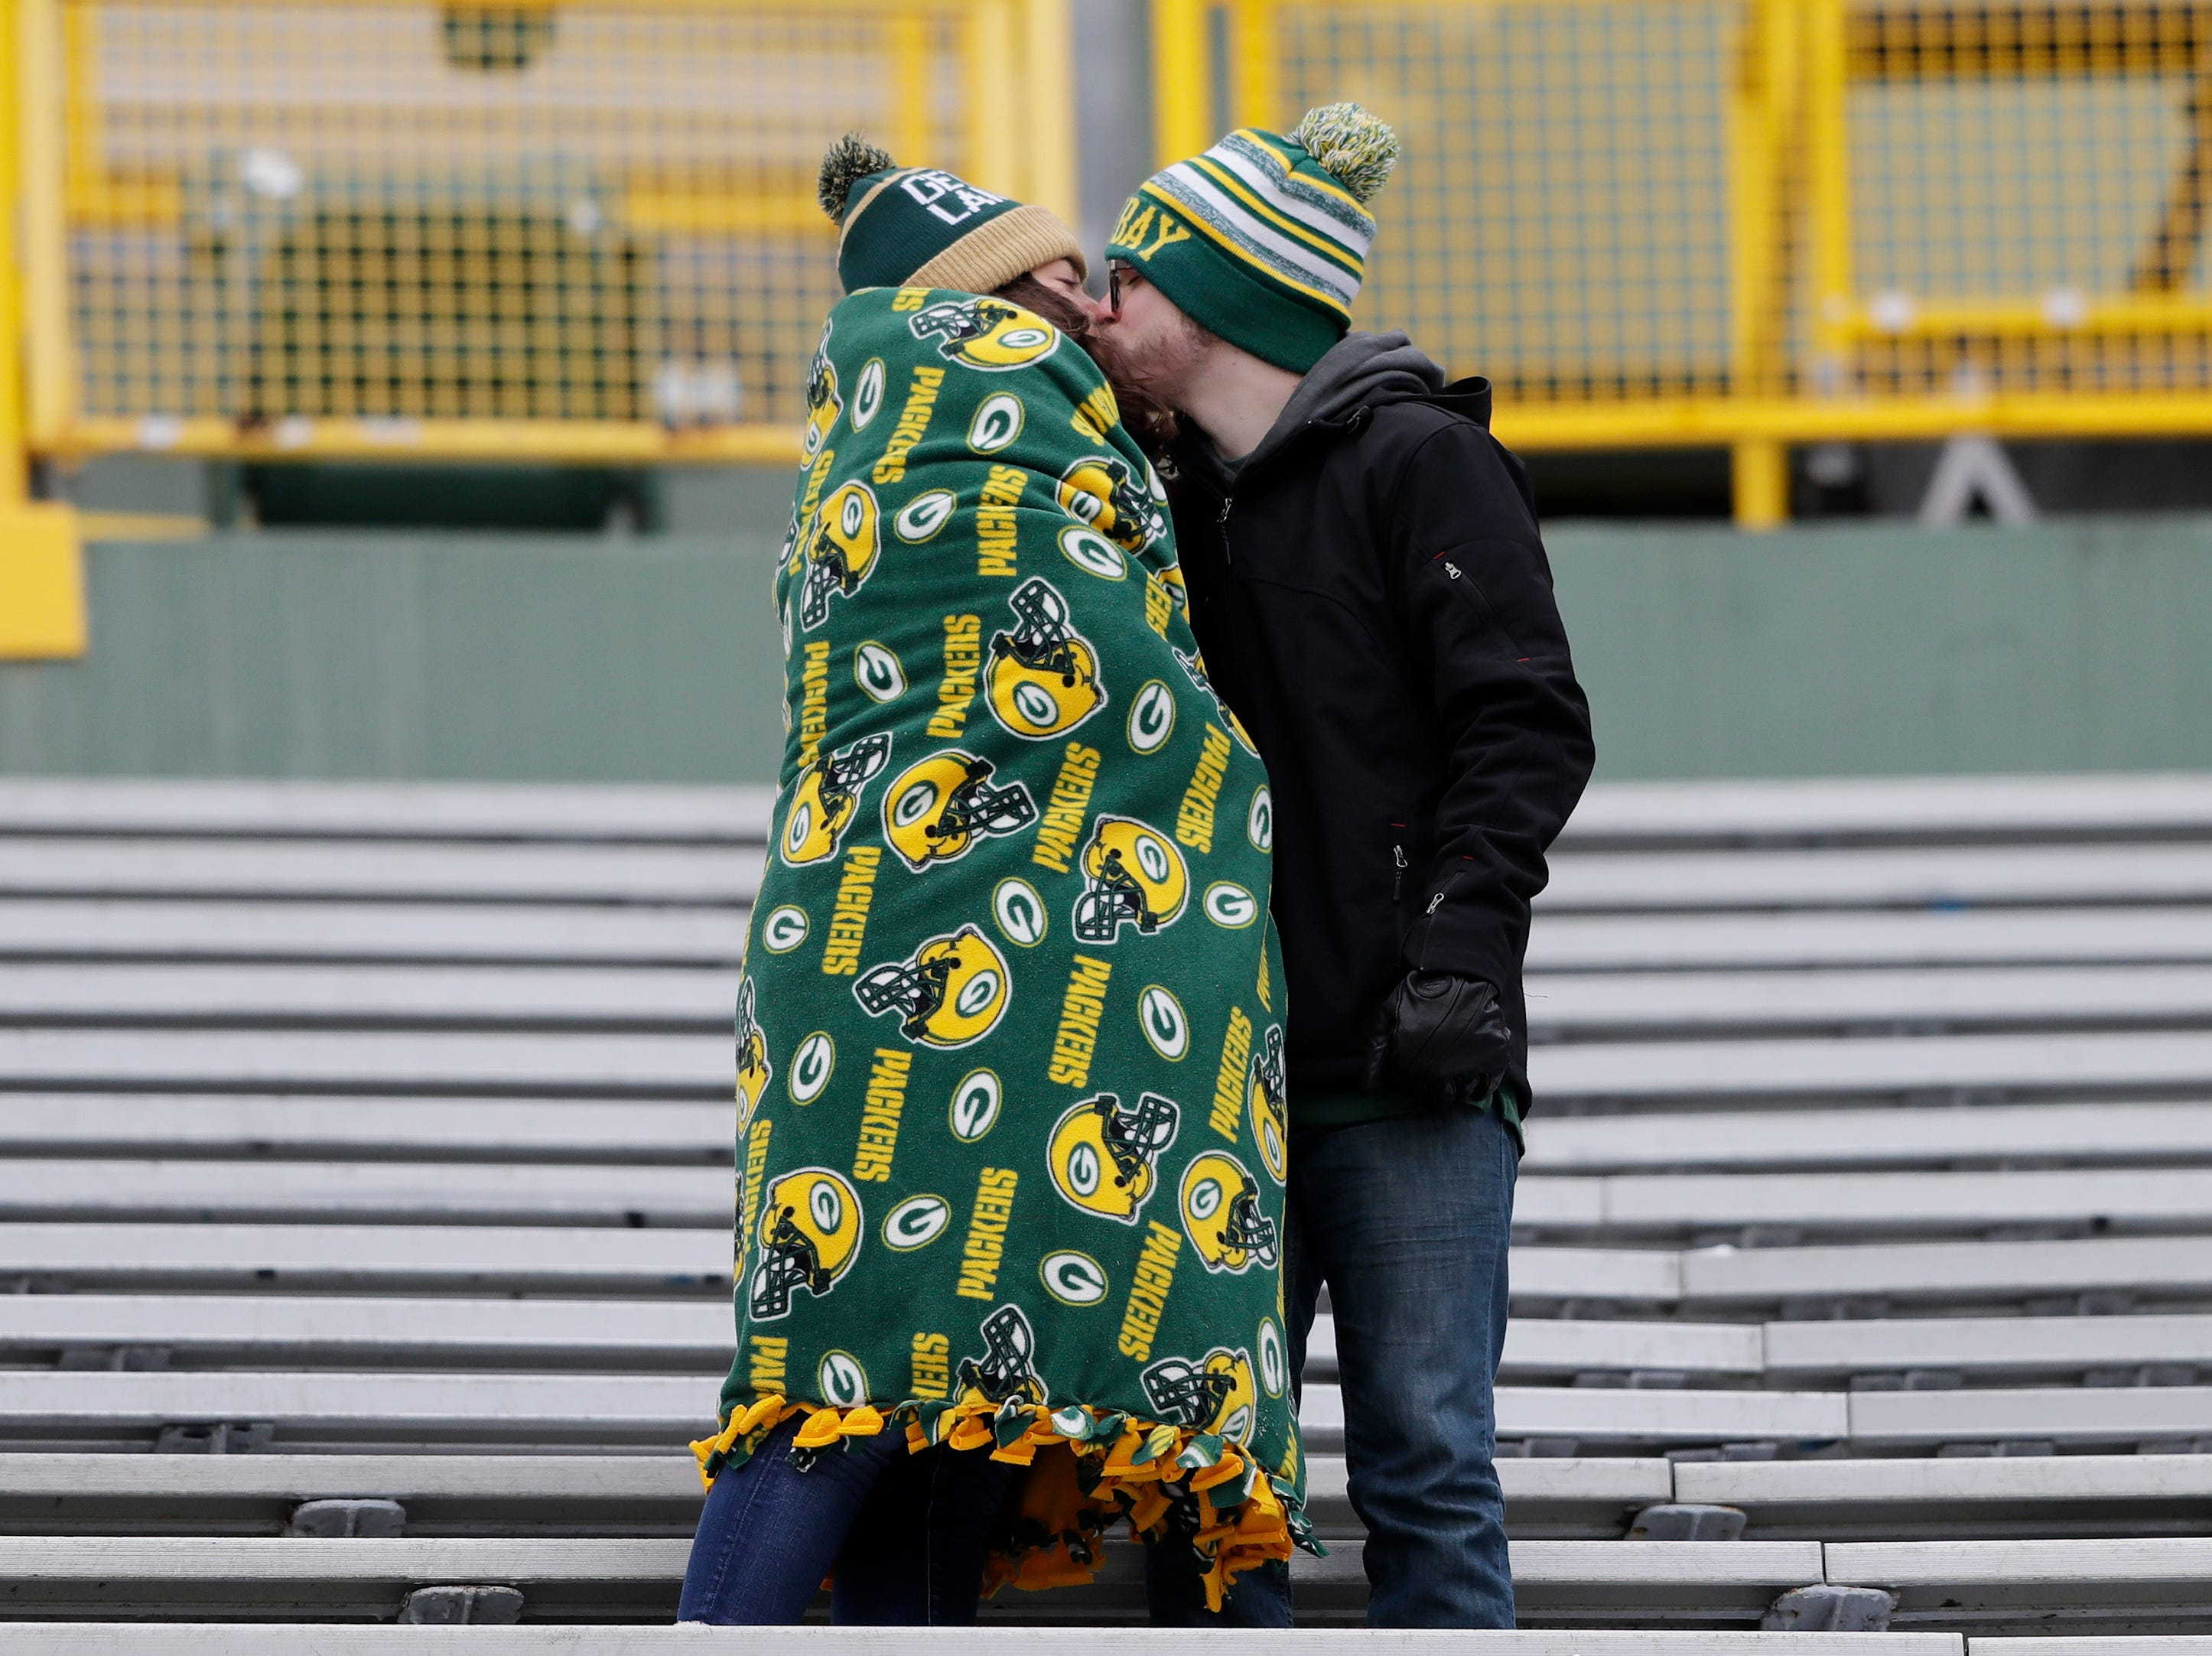 Fans arrive for the Green Bay Packers against the Detroit Lions at Lambeau Field on Sunday, December 30, 2018 in Green Bay, Wis.